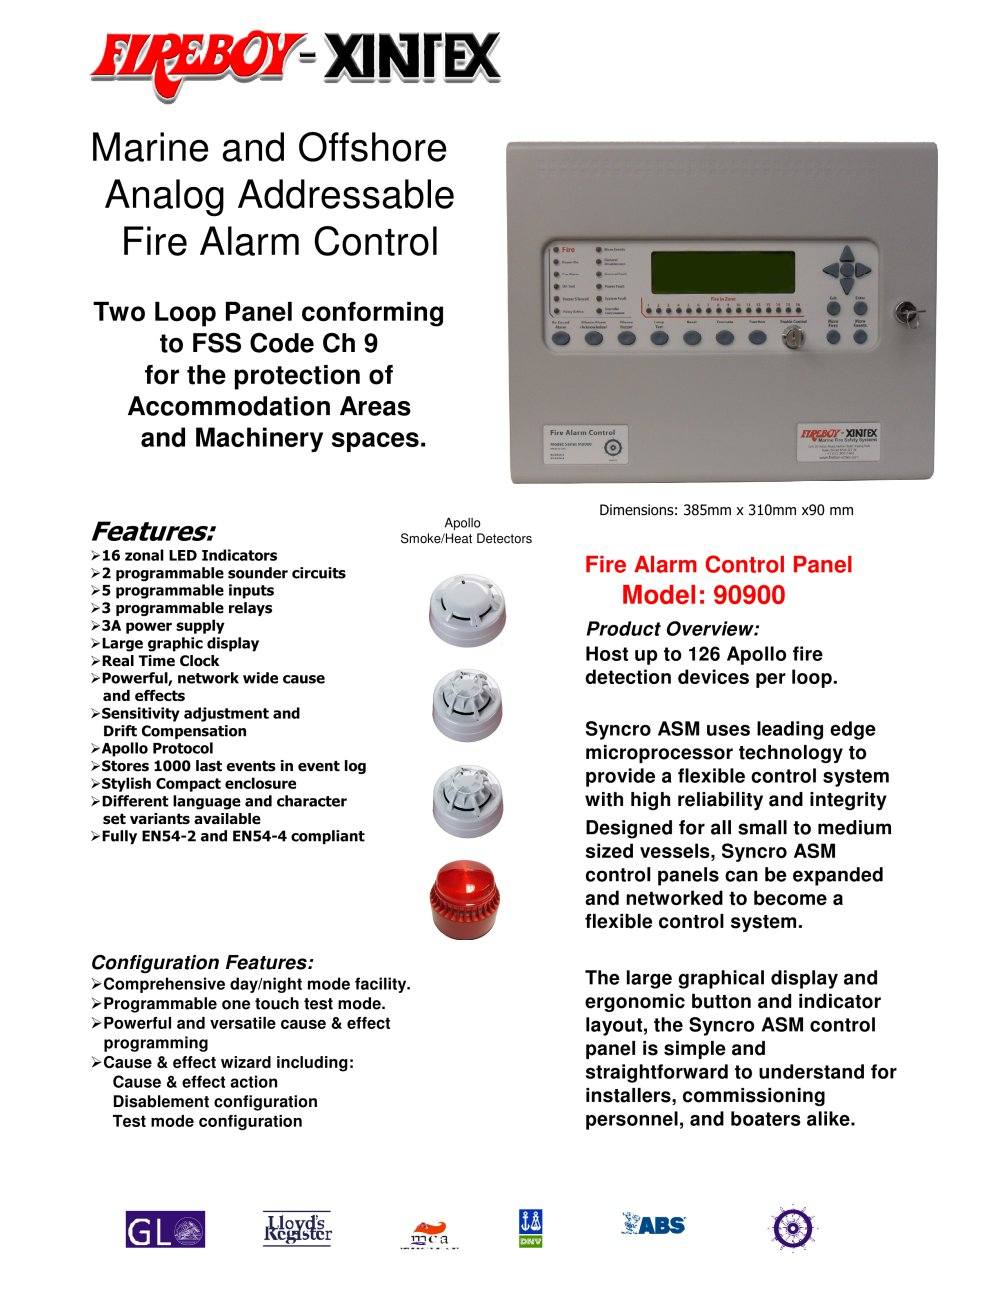 Fire Alarm Control for IMO/Solas approved vessels - Fireboy - Xintex ...